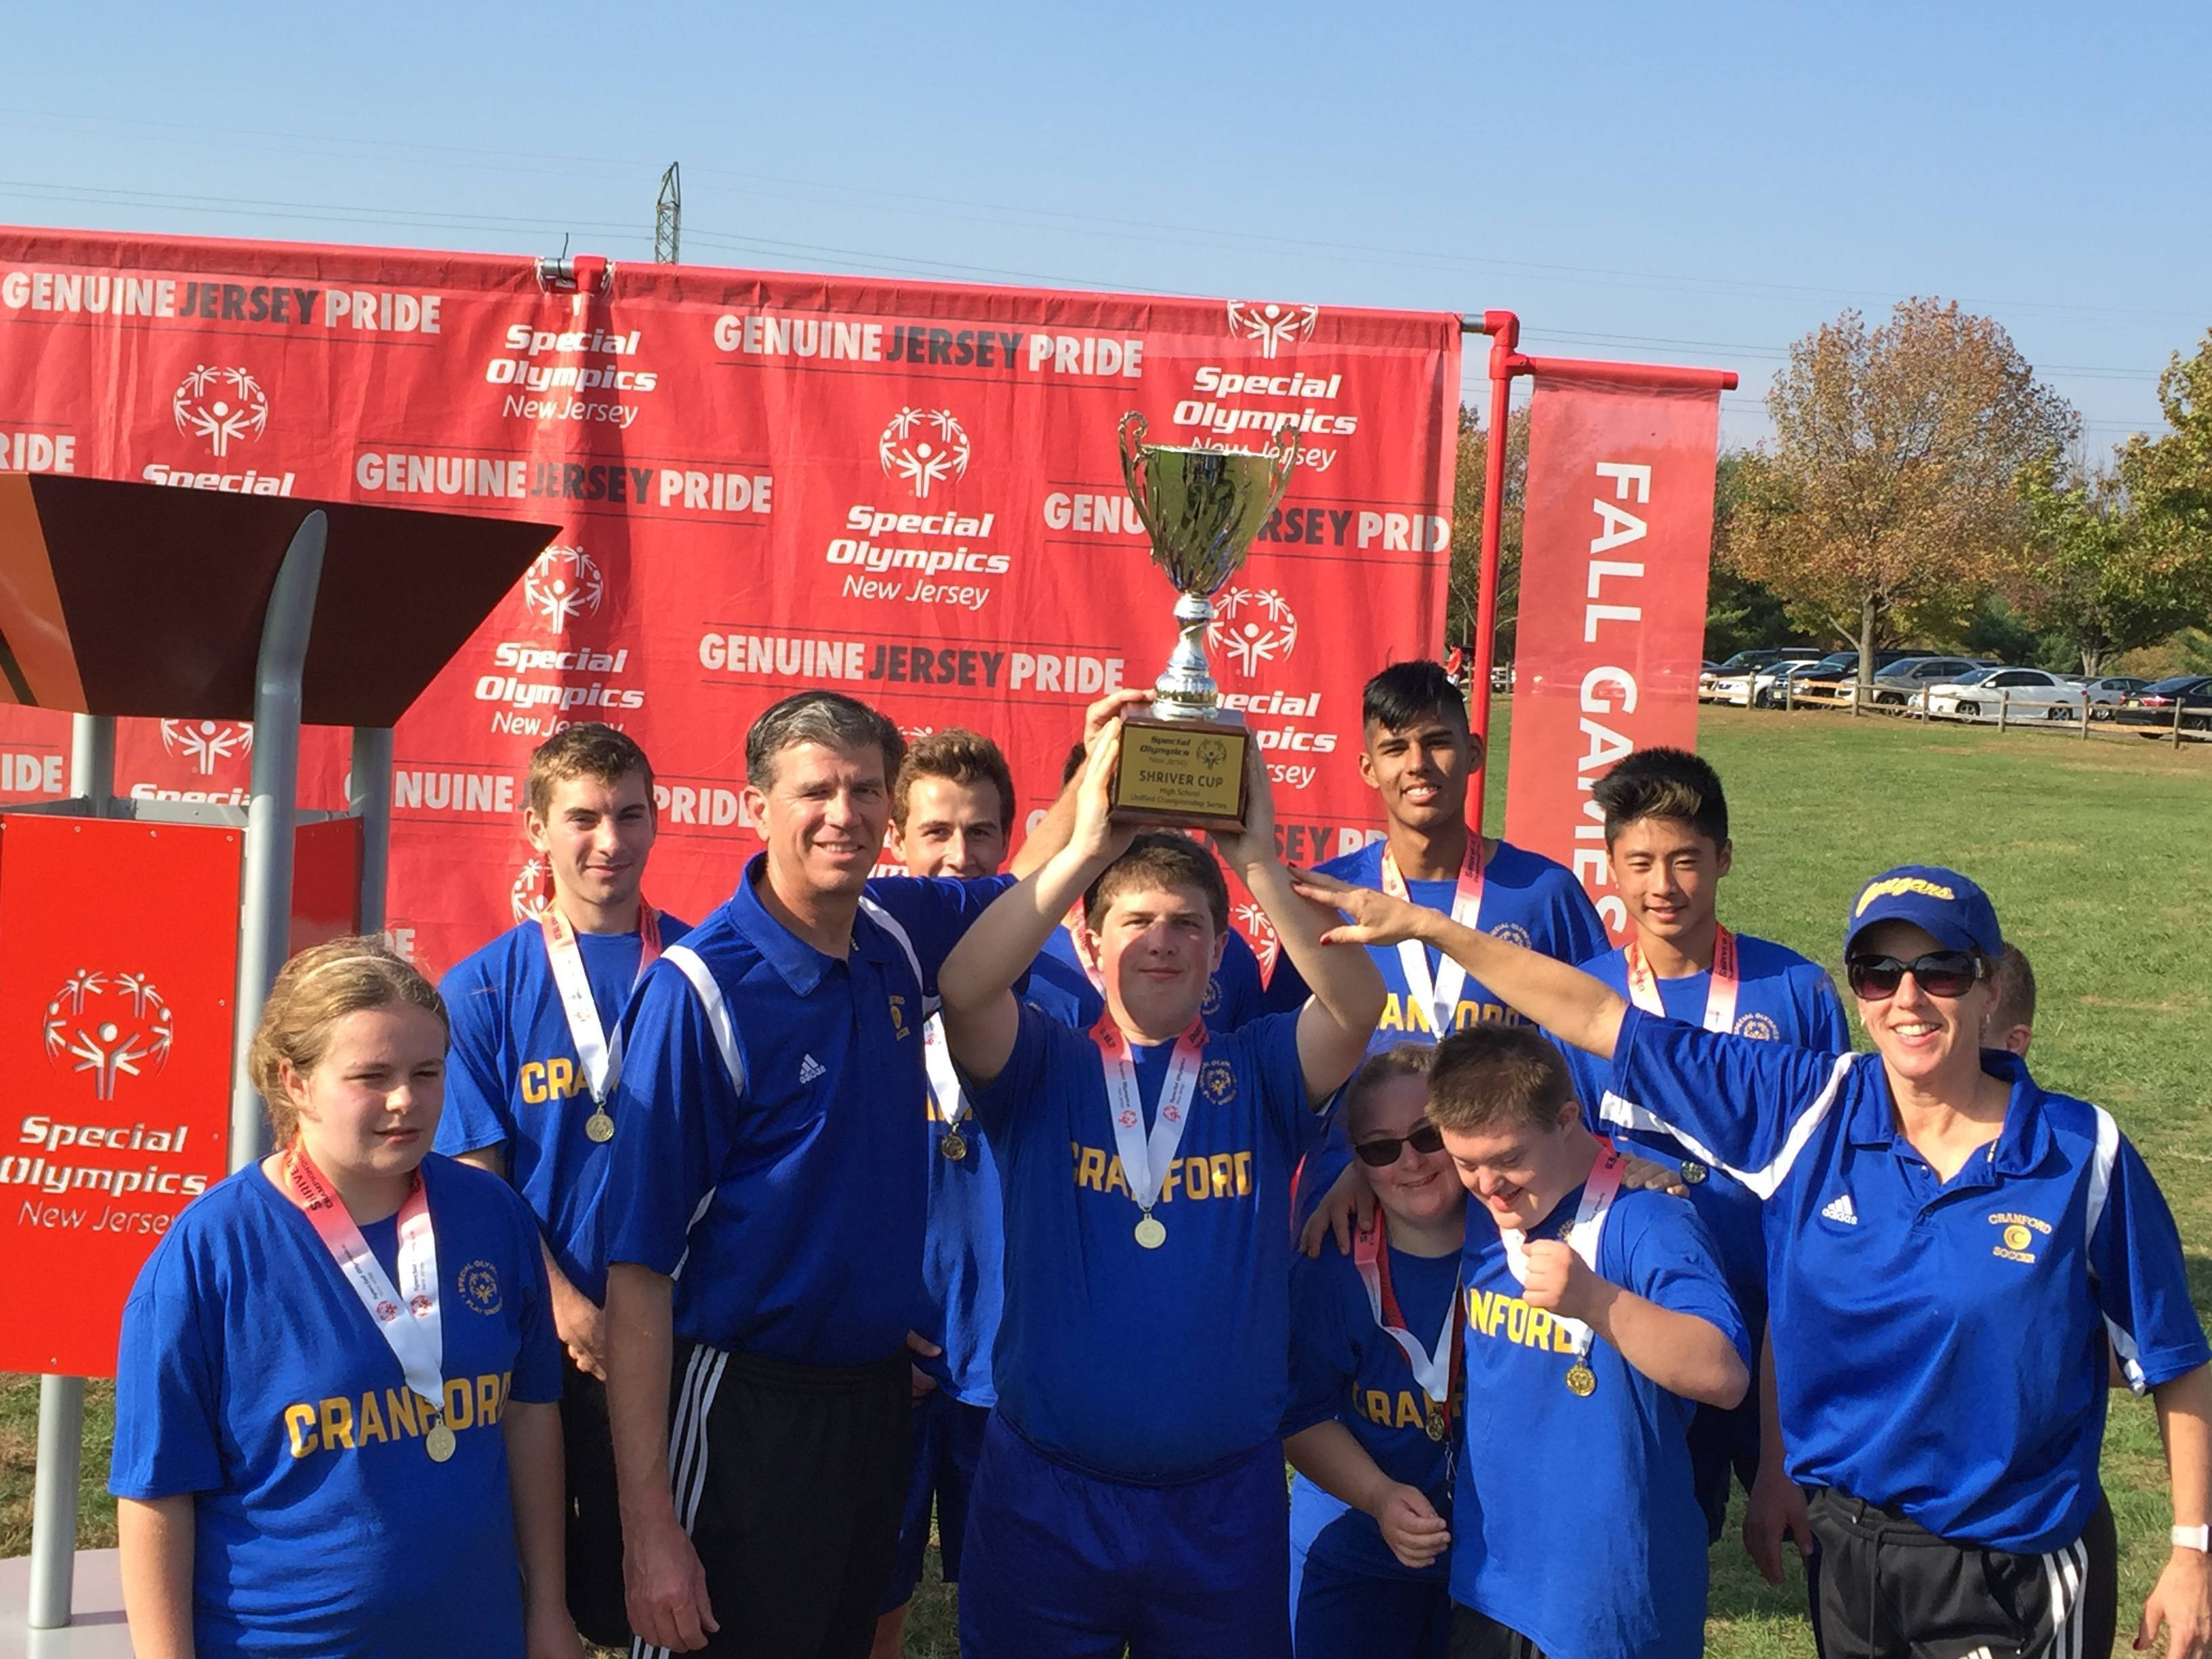 New jersey union county cranford - Cranford High School Unified Soccer Wins Special Olympics New Jersey Shriver Cup Cranford Nj News Tapinto